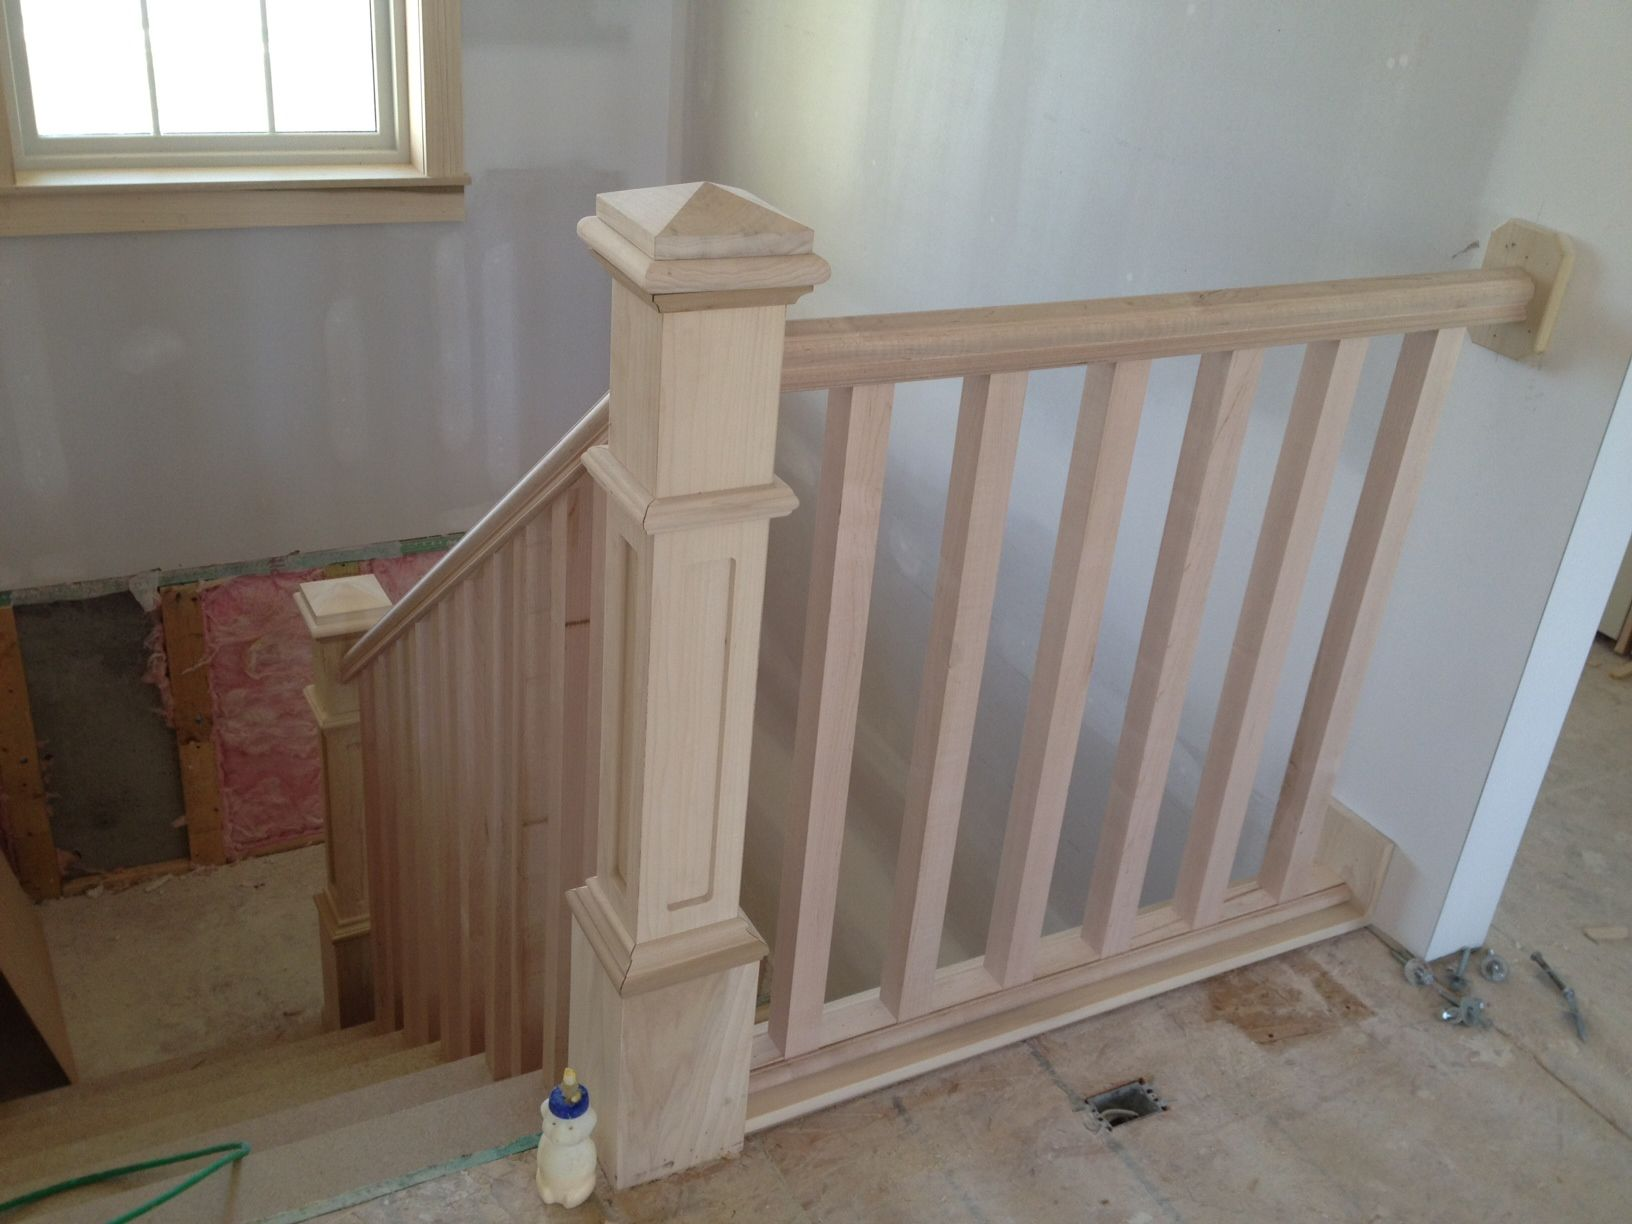 Interior Stair Railings Stair Rails Decorating Ideas Design Stair Railings Pinterest